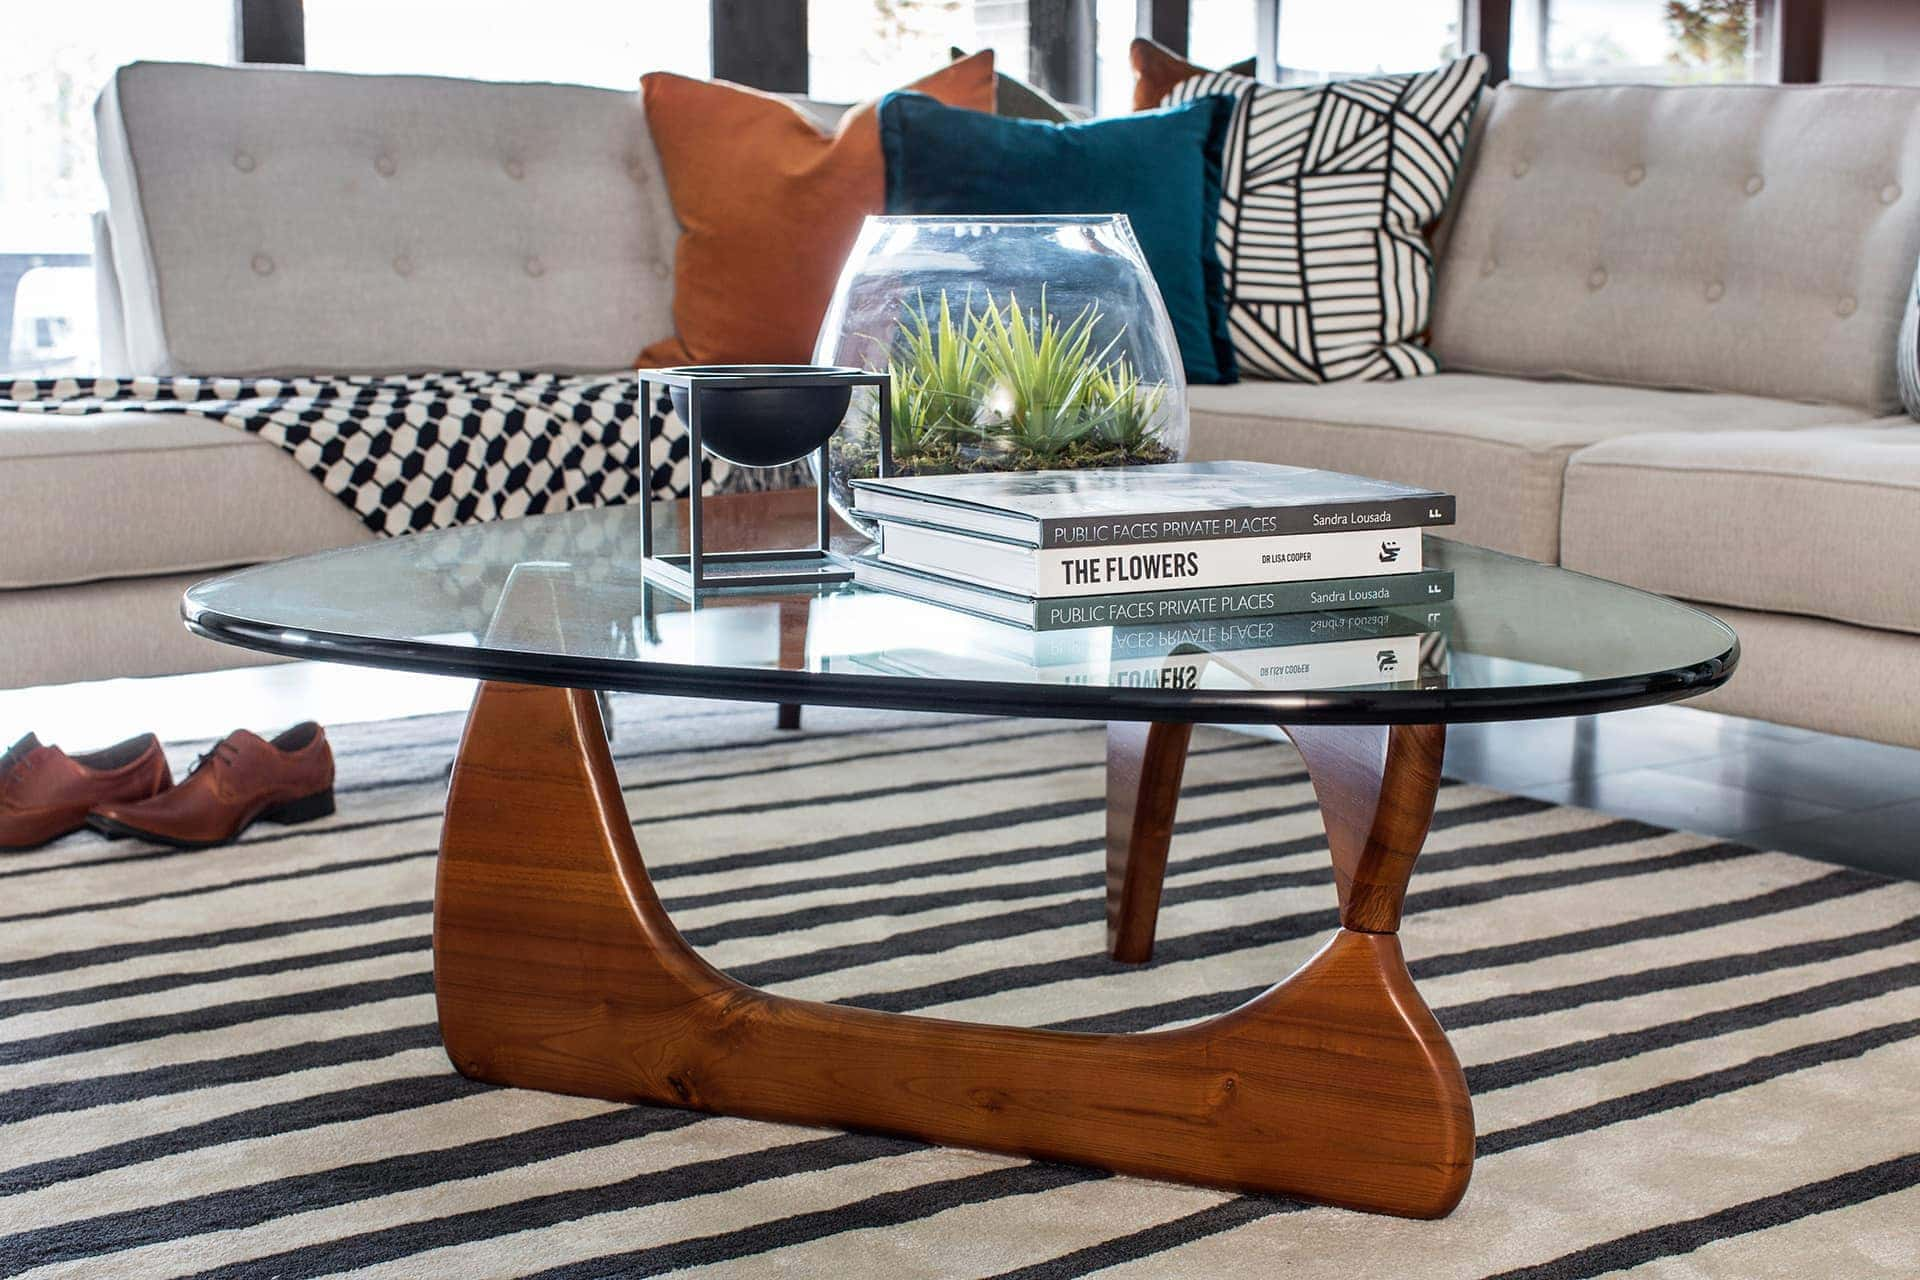 modernist living room design from metricon with mid century glass top coffee table - Modernist Living Room